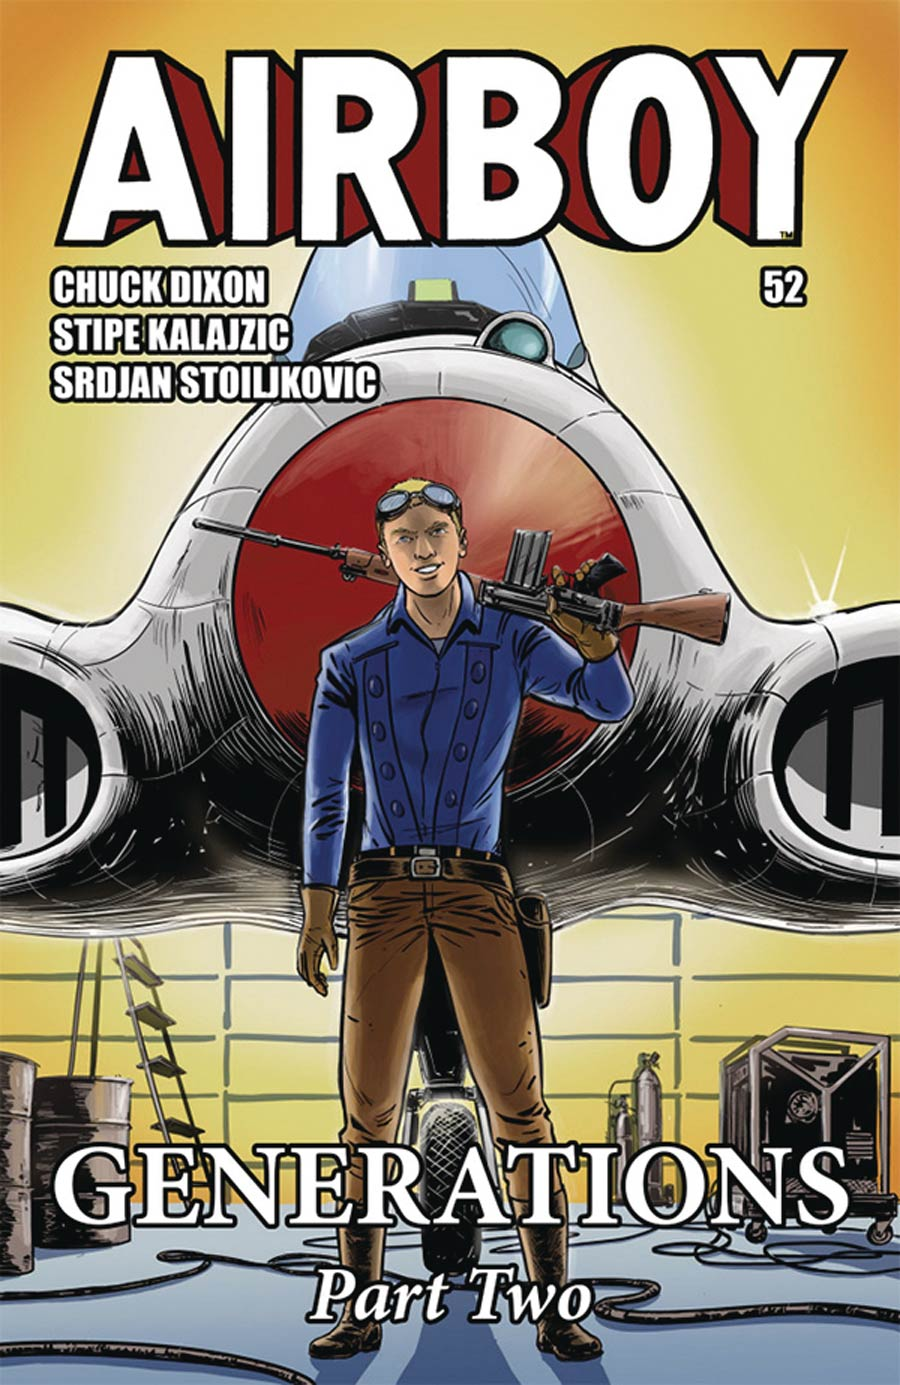 Airboy Vol 2 #52 Cover A Regular Brent McKee Cover